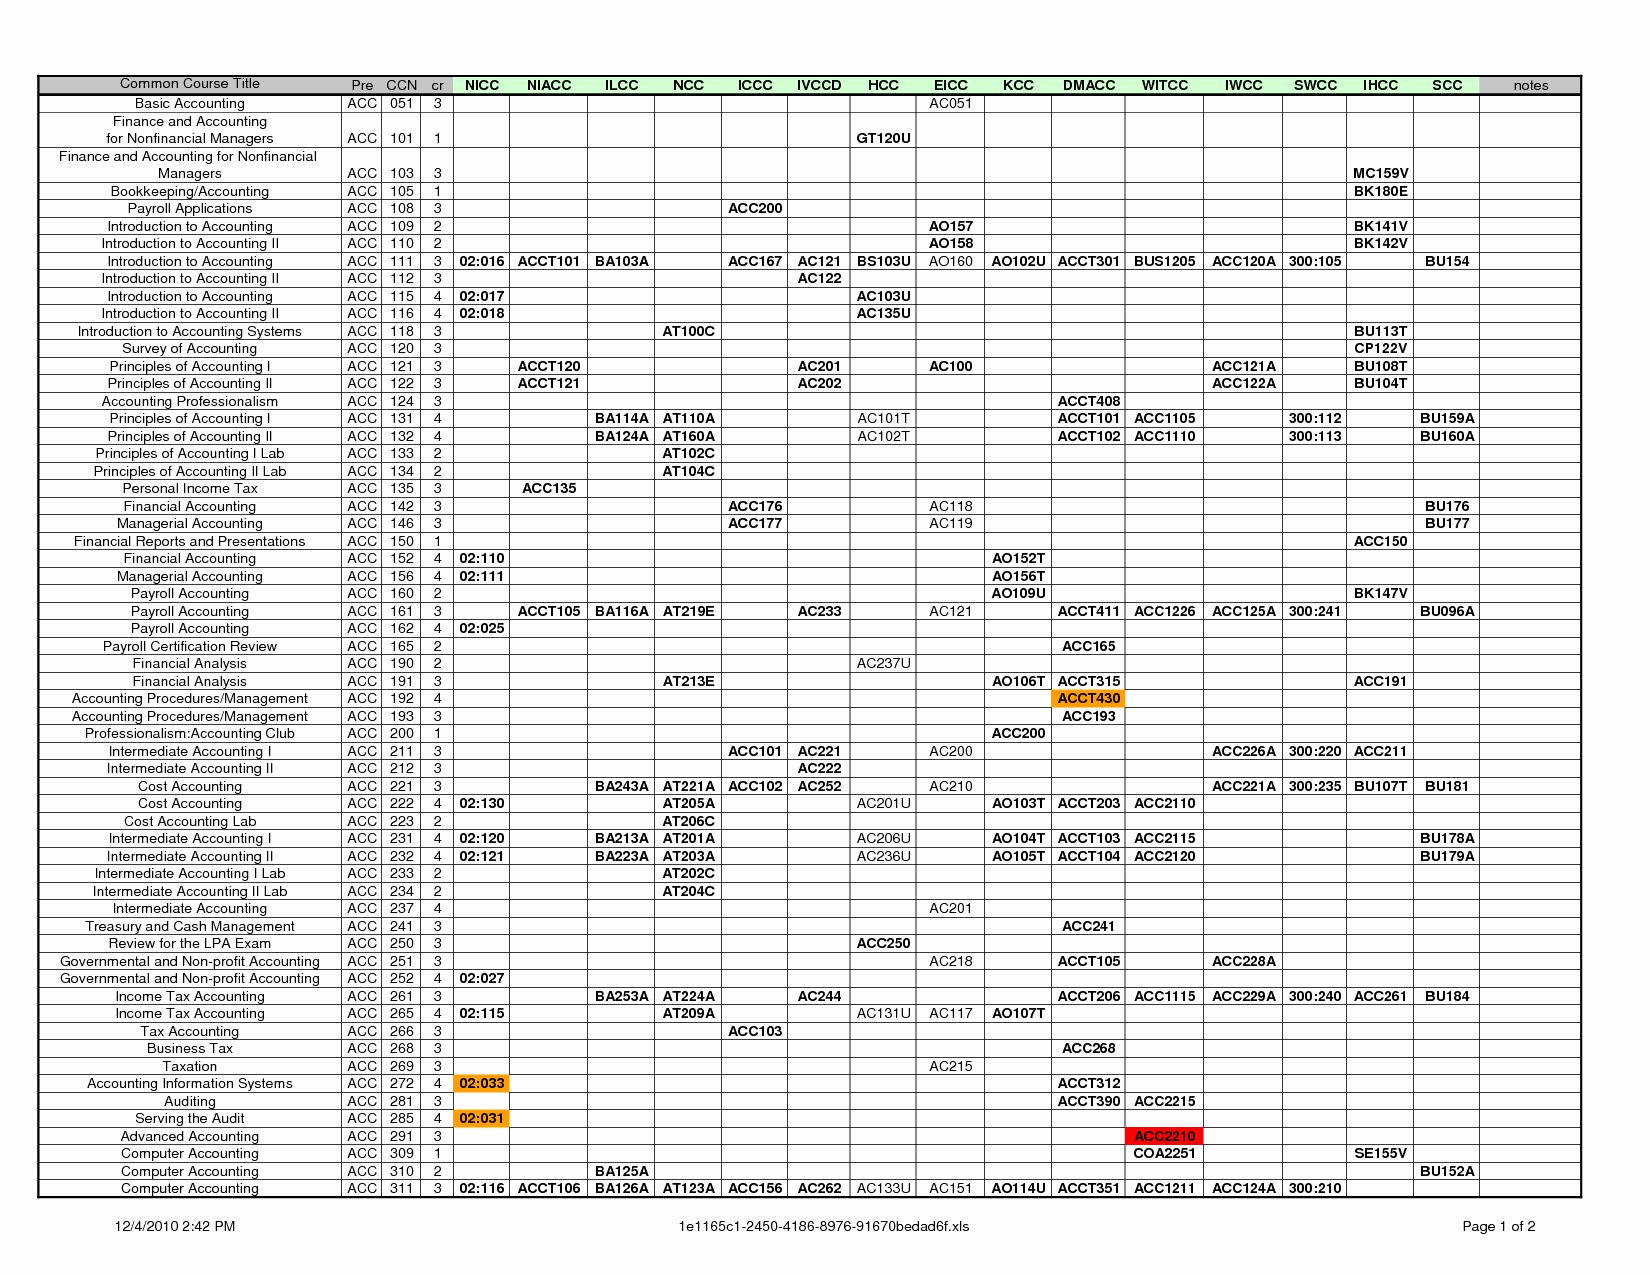 Bookkeeping Spreadsheet Using Microsoft Excel Lovely Bookkeeping For Throughout Free Sole Trader Bookkeeping Spreadsheet